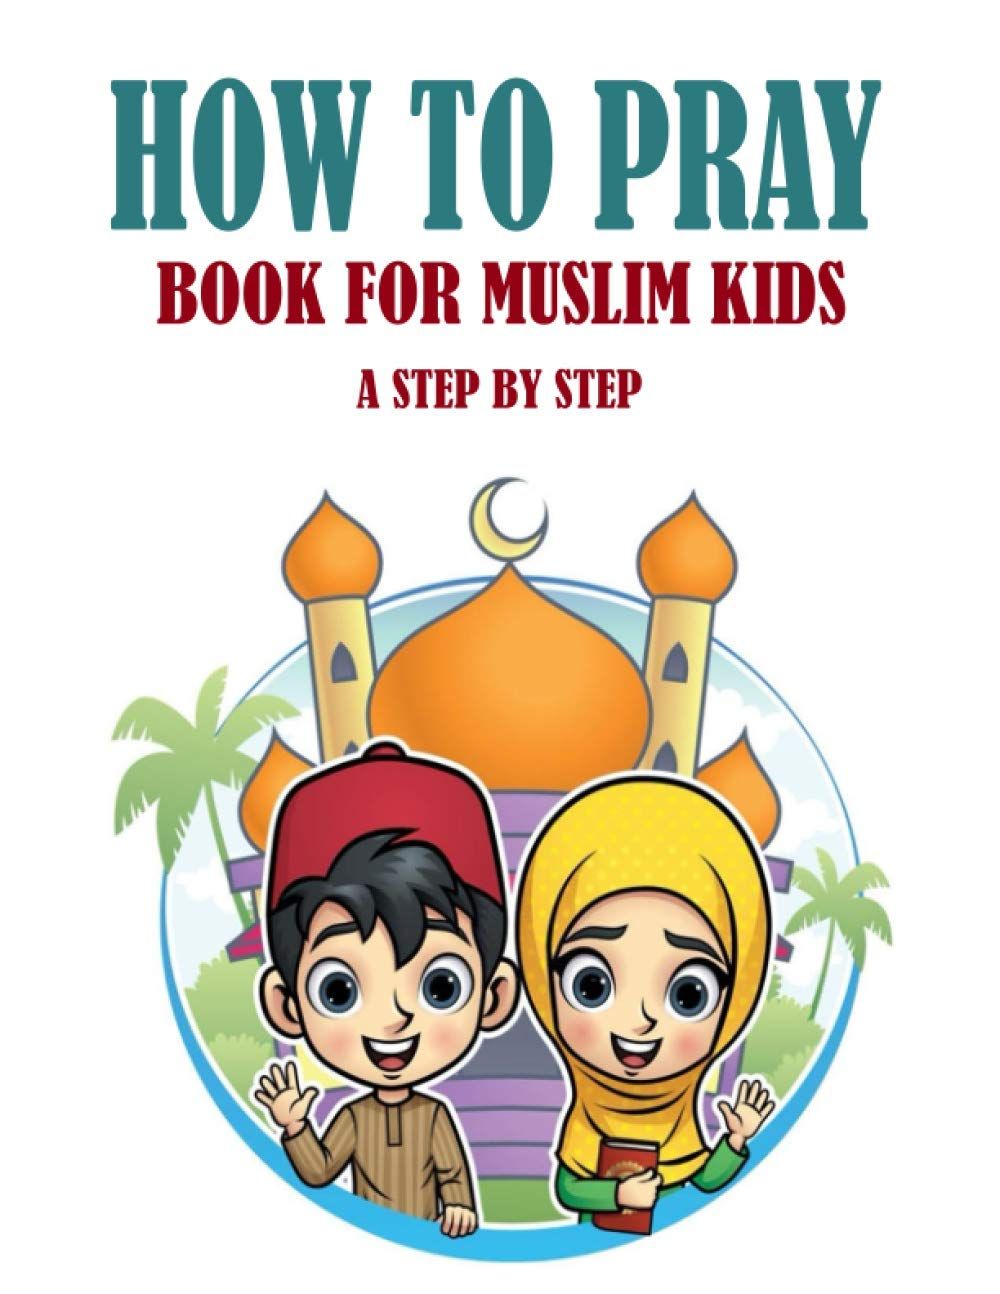 HOW TO PRAY BOOK FOR MUSLIM KIDS Book For Muslims Adults and Kids ...